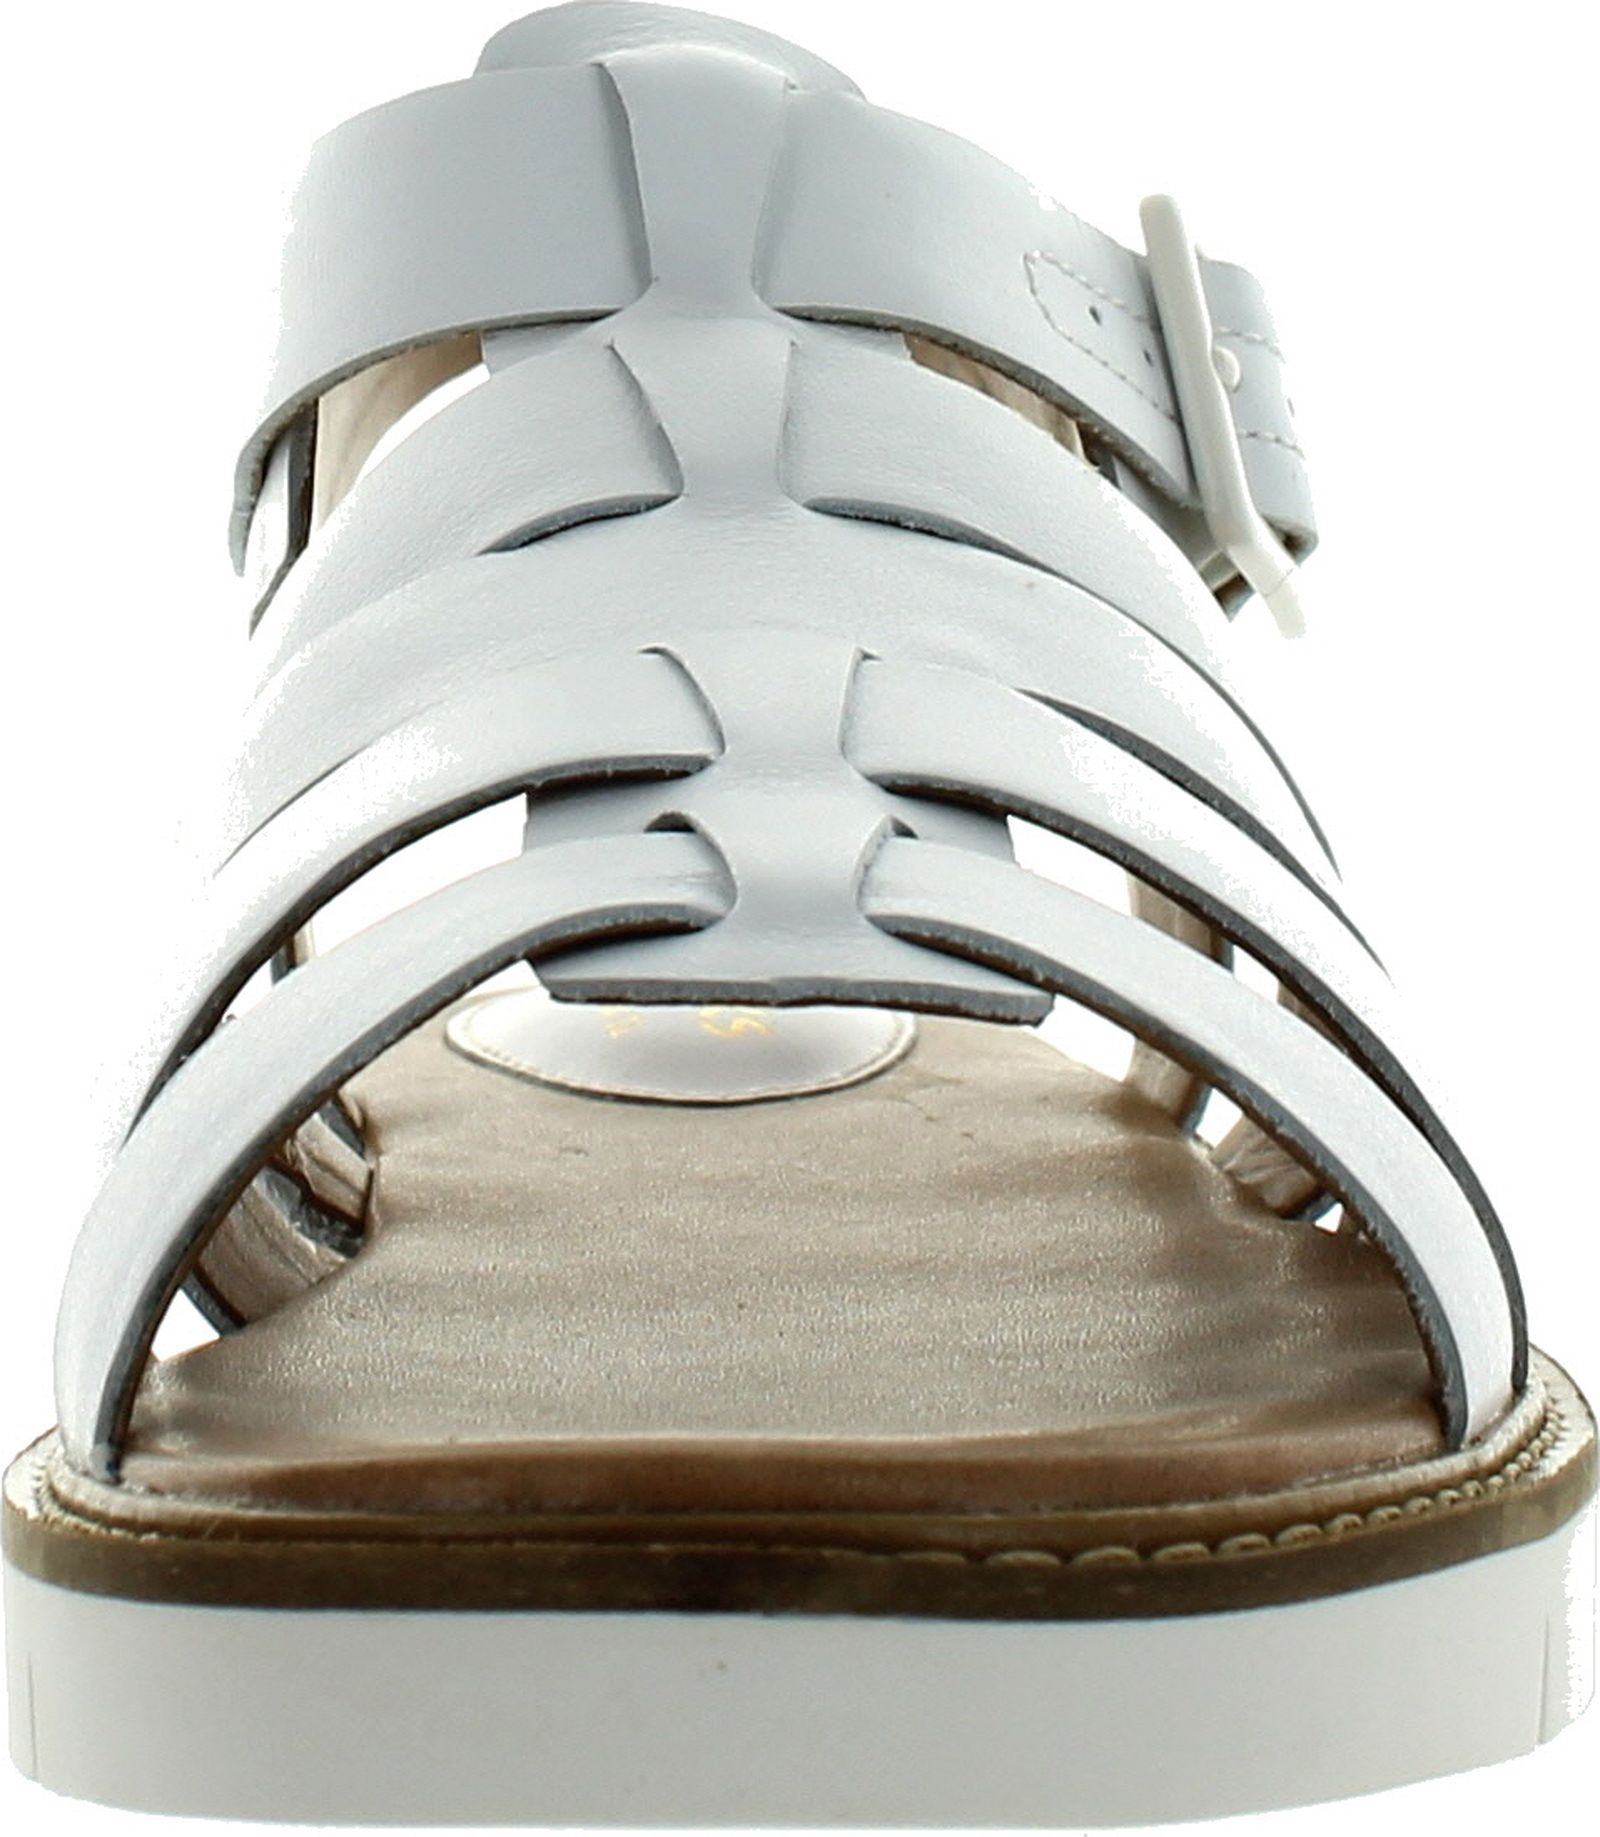 1868635d2442 Clarks Lydie Kona White Leather Women Sandals Multisize 10 for sale ...